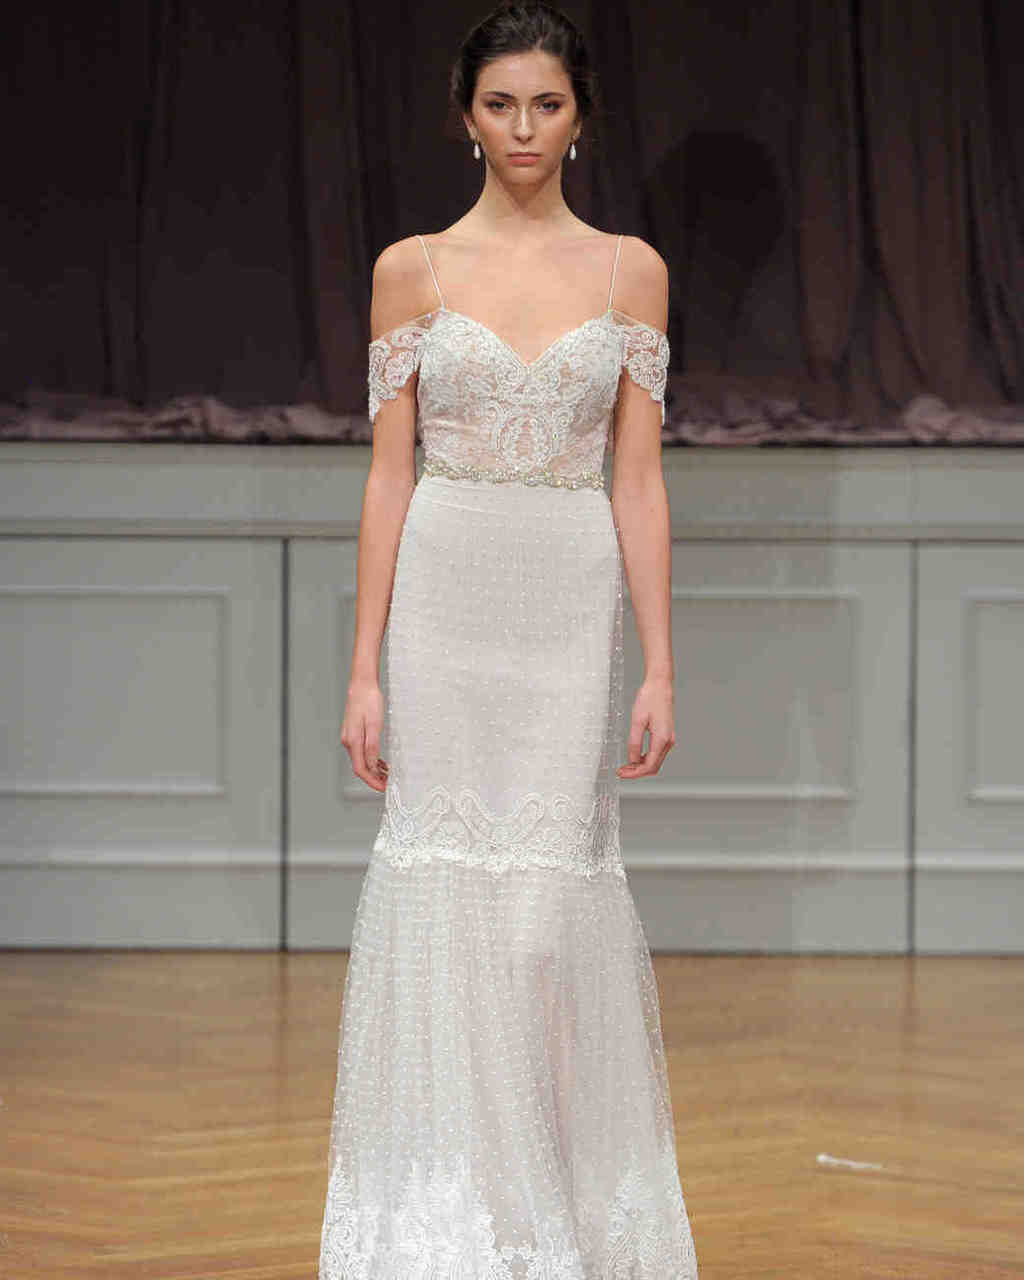 alon-livne-white-wedding-dress-fall2017-6203351-003_vert